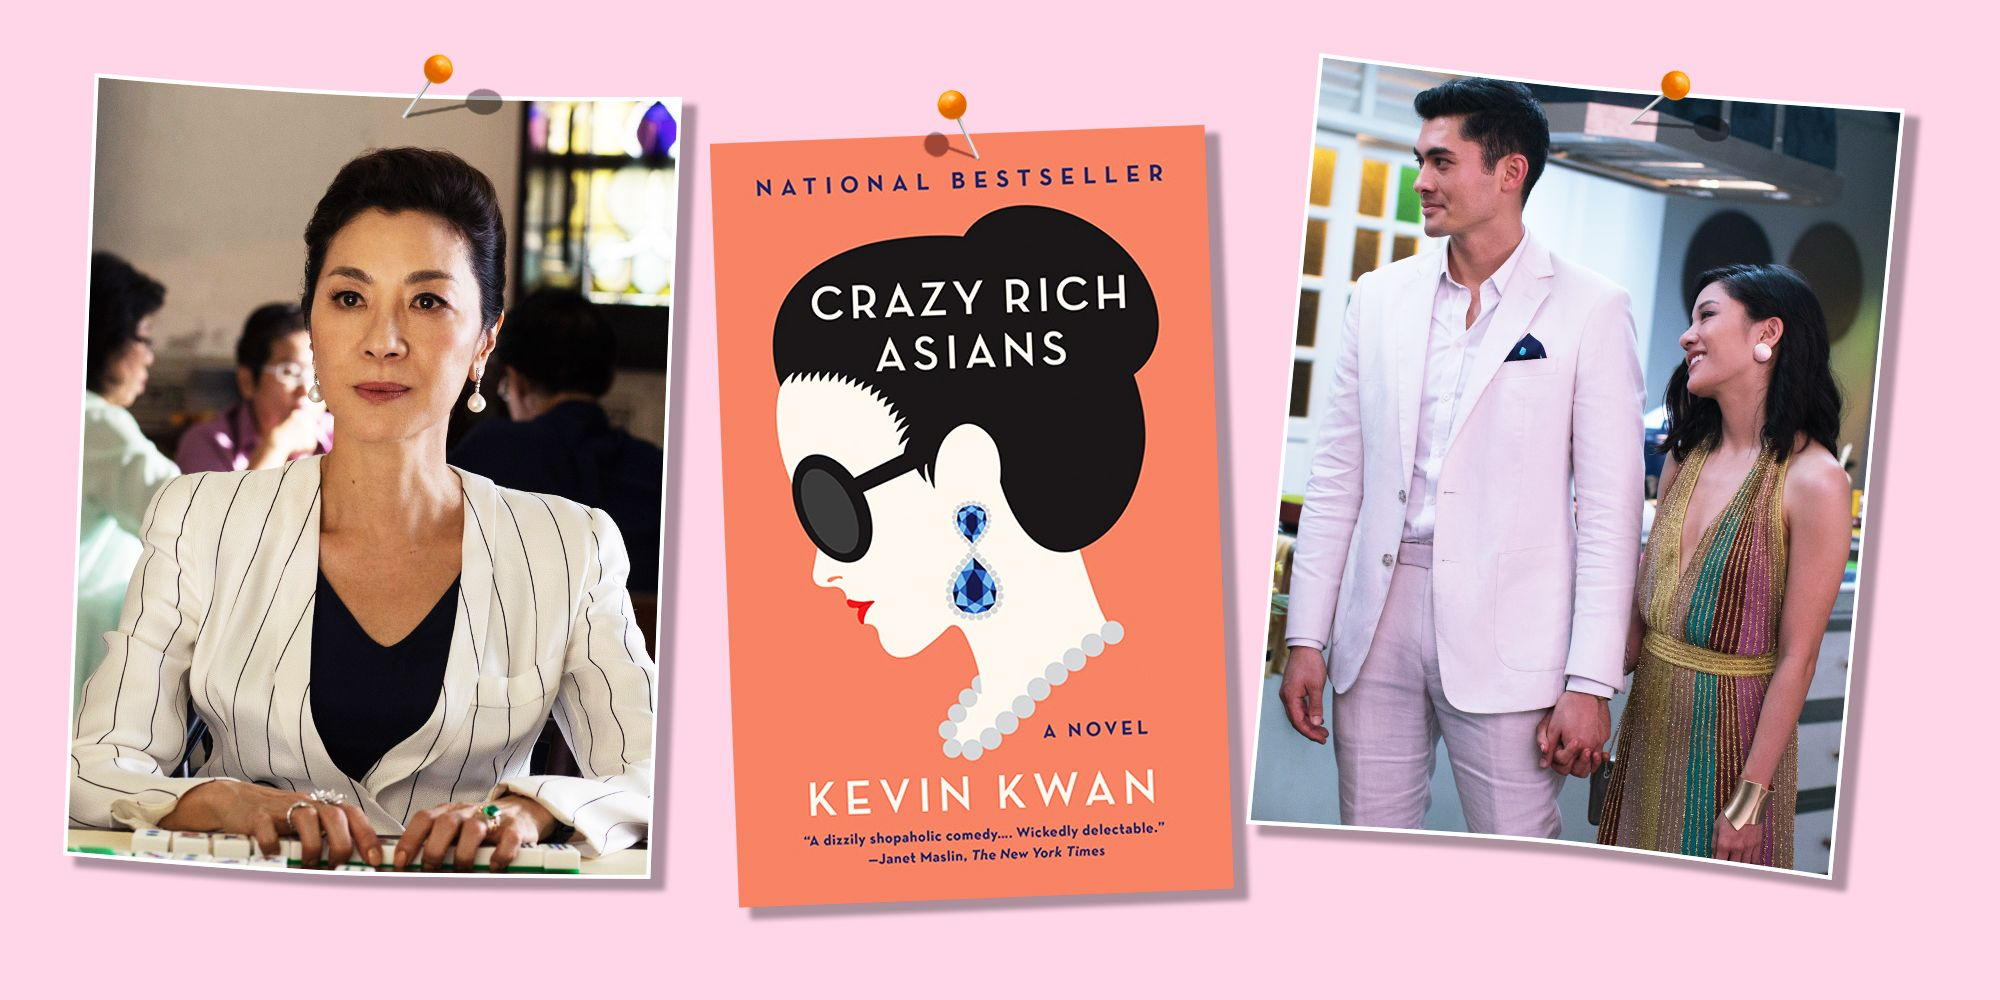 Crazy Rich Asians' Book Versus Movie - What Are the